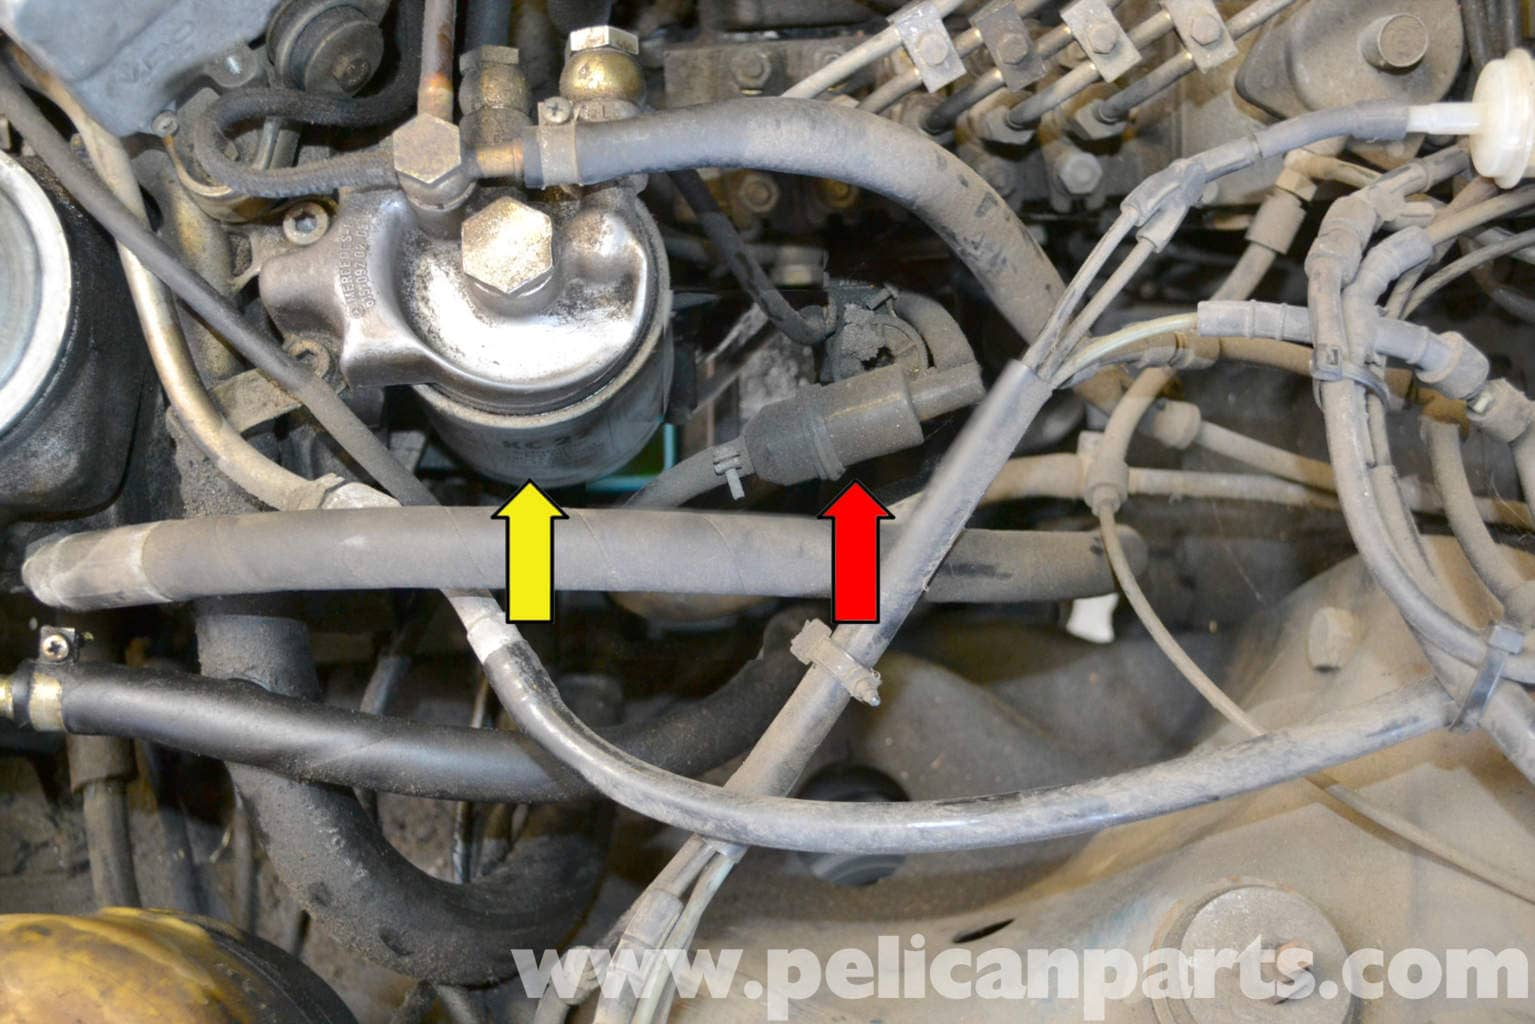 Clear Coolant Inline Fuel Filter Wiring Diagram Car Mercedes Benz W123 Replacement 300td 1977 1985 Universal